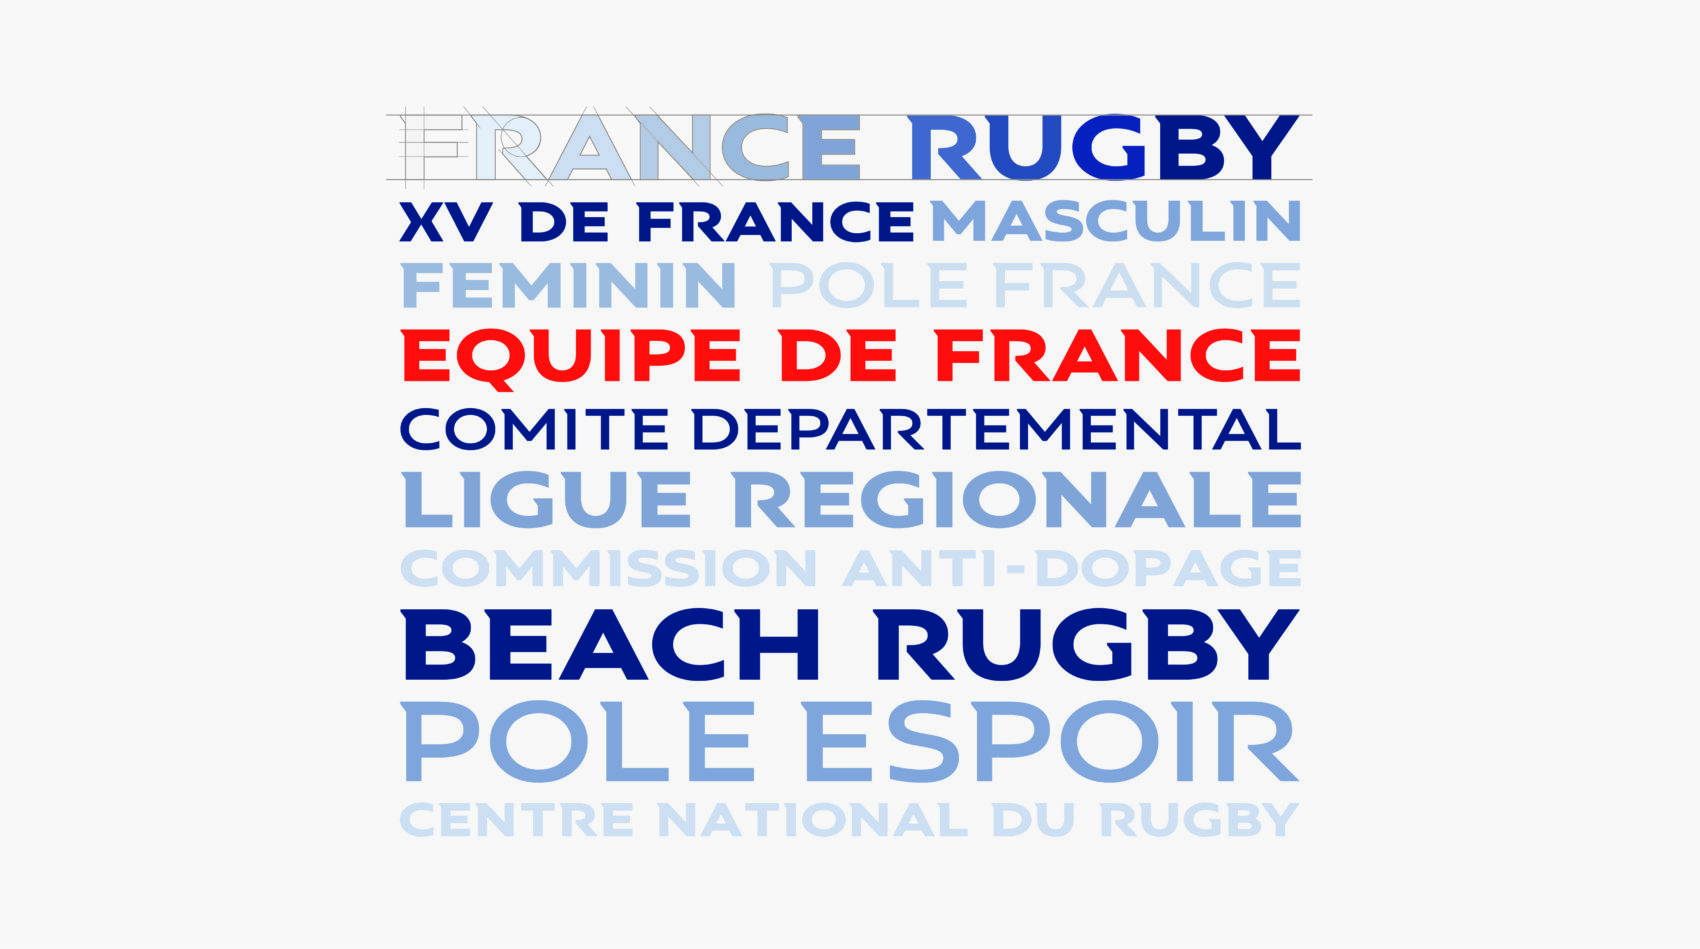 Projet_project_leroy_tremblot_FFR_federation_francaise_rugby_french_nouvelle_identite_new_identity_typo_alphabet